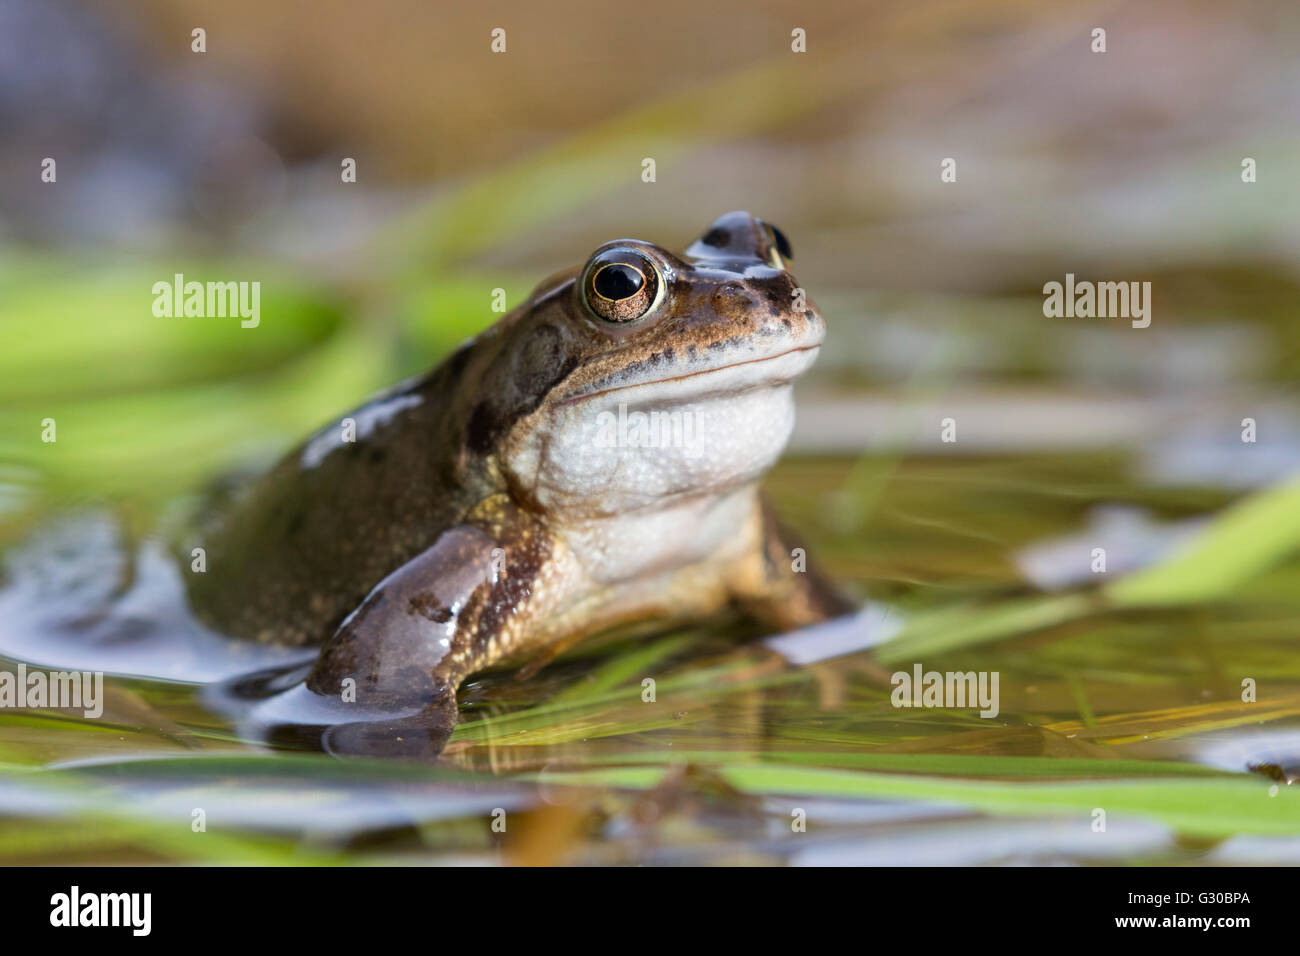 Common frog (Rana temporaria), Northumberland, England, United Kingdom, Europe - Stock Image